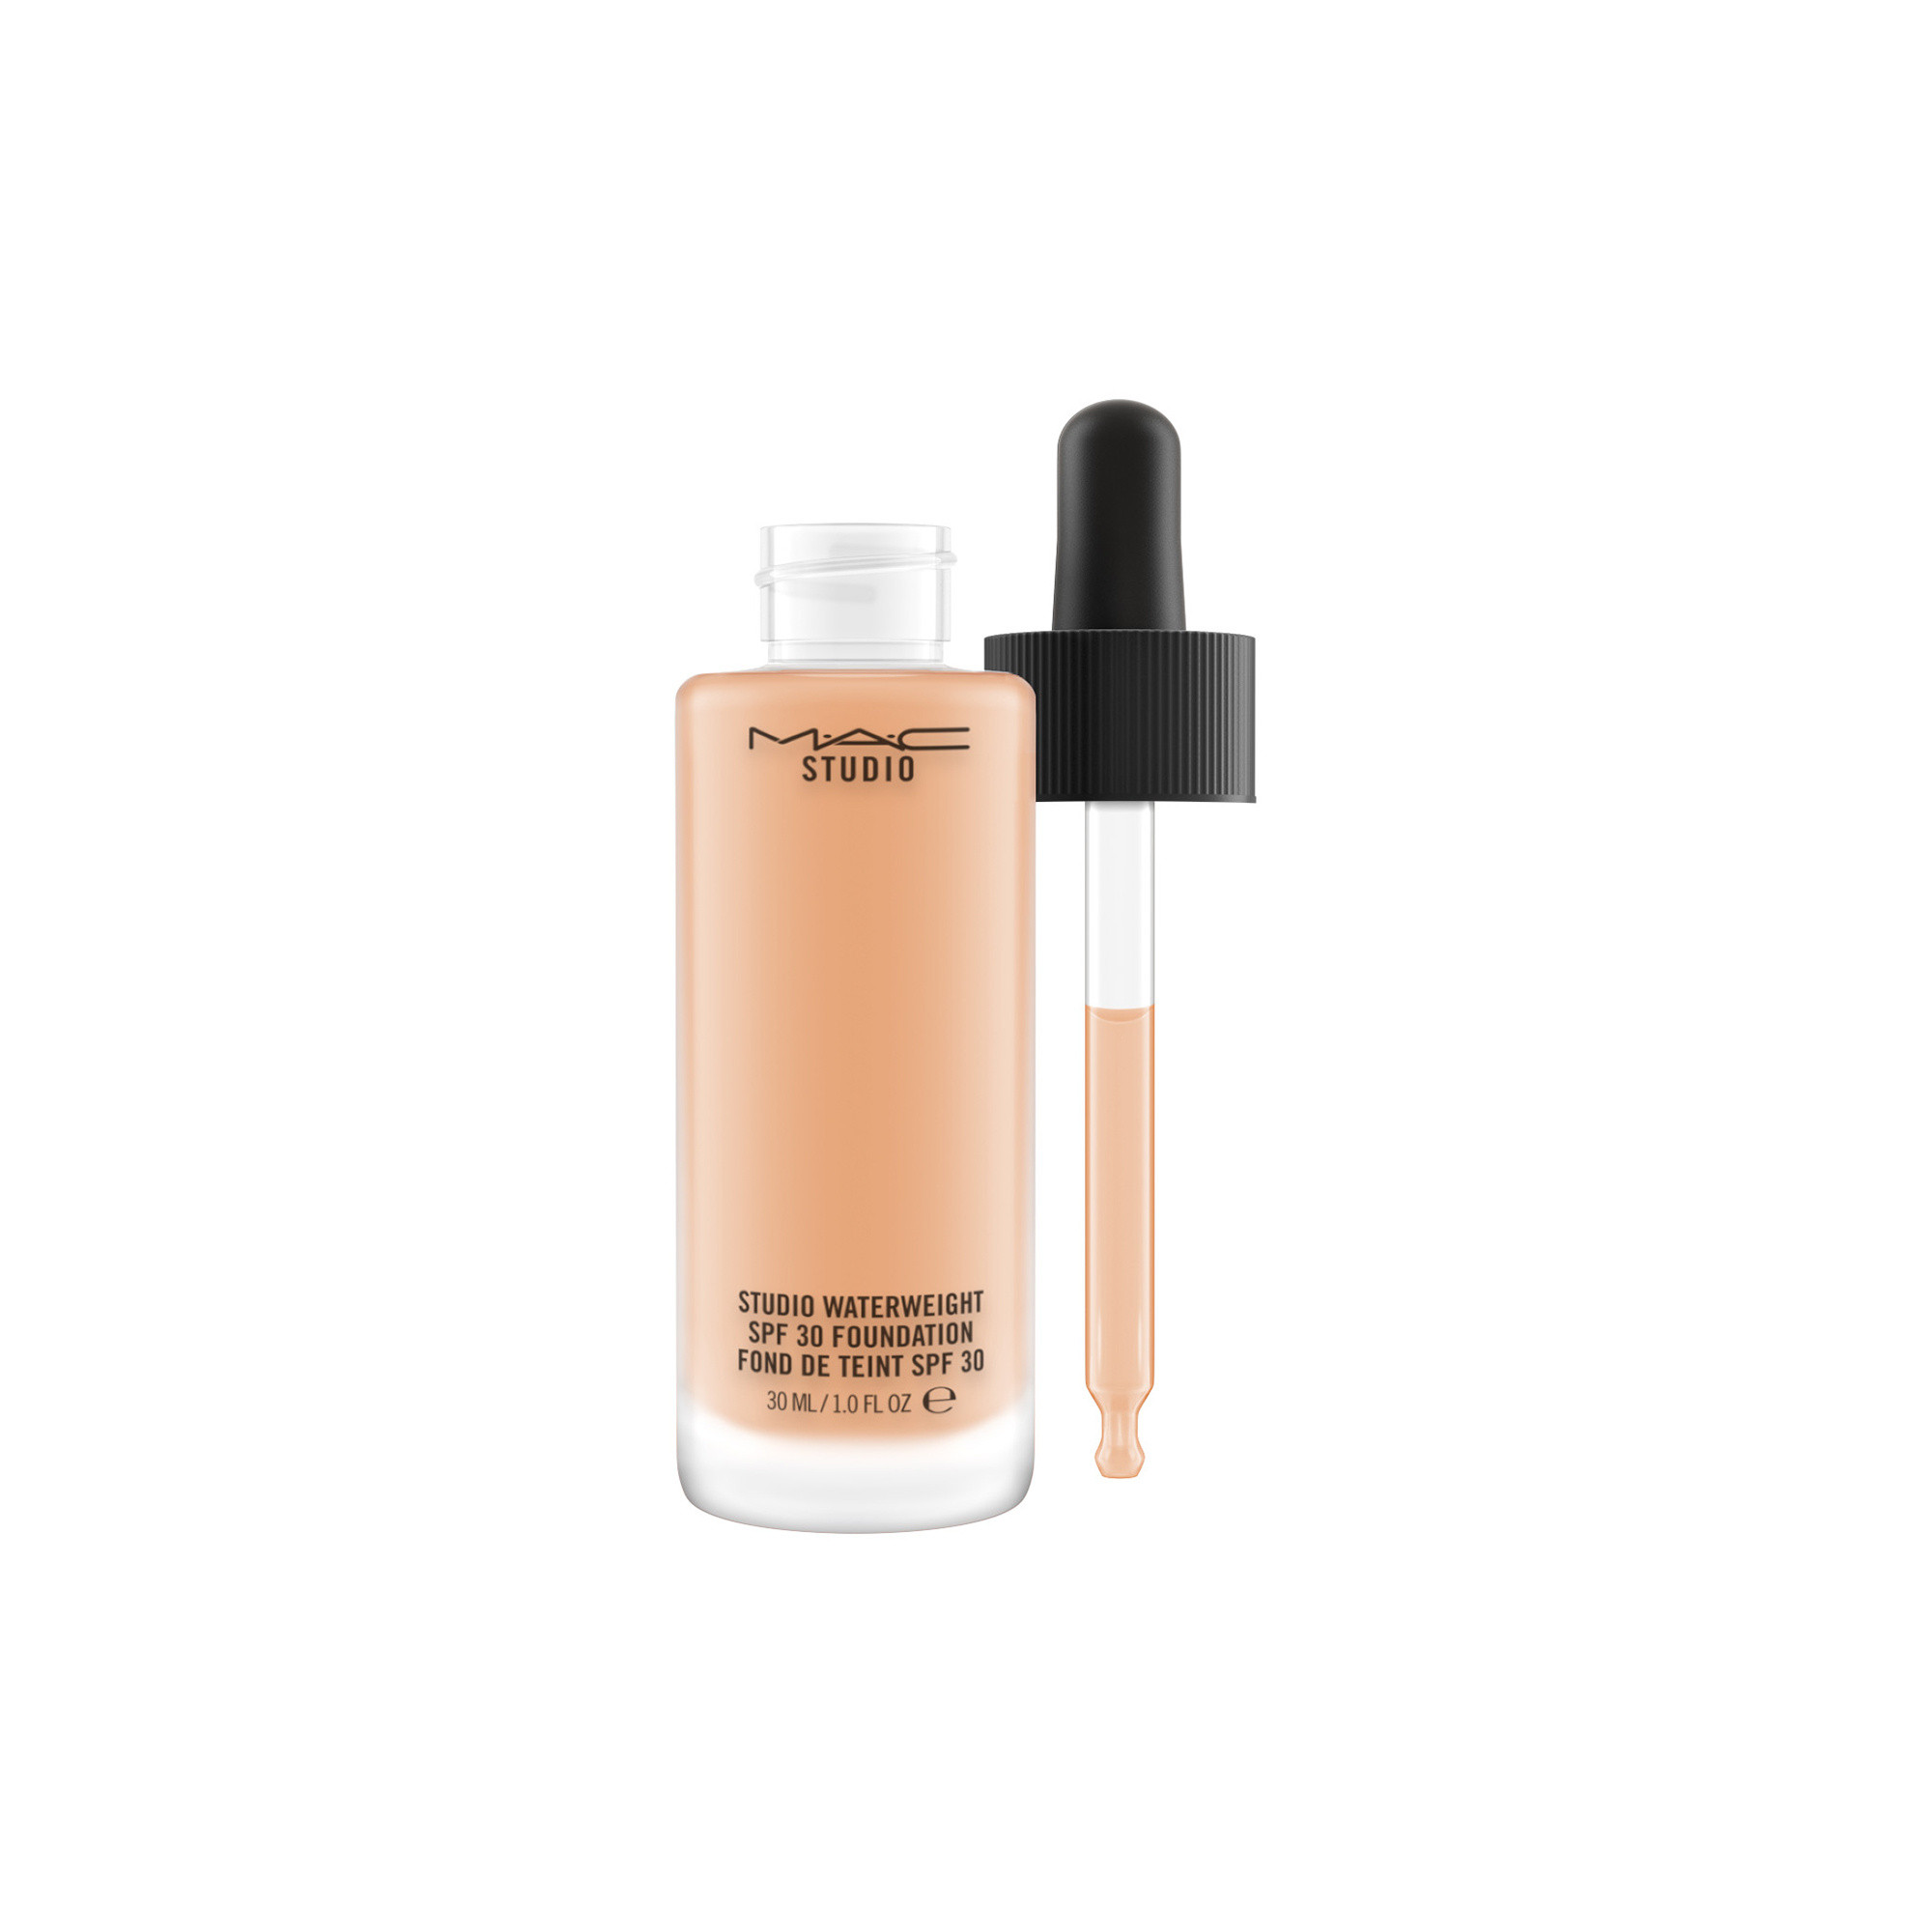 Studio Waterweight Foundation Spf30 - NC37, NC37, large image number 0